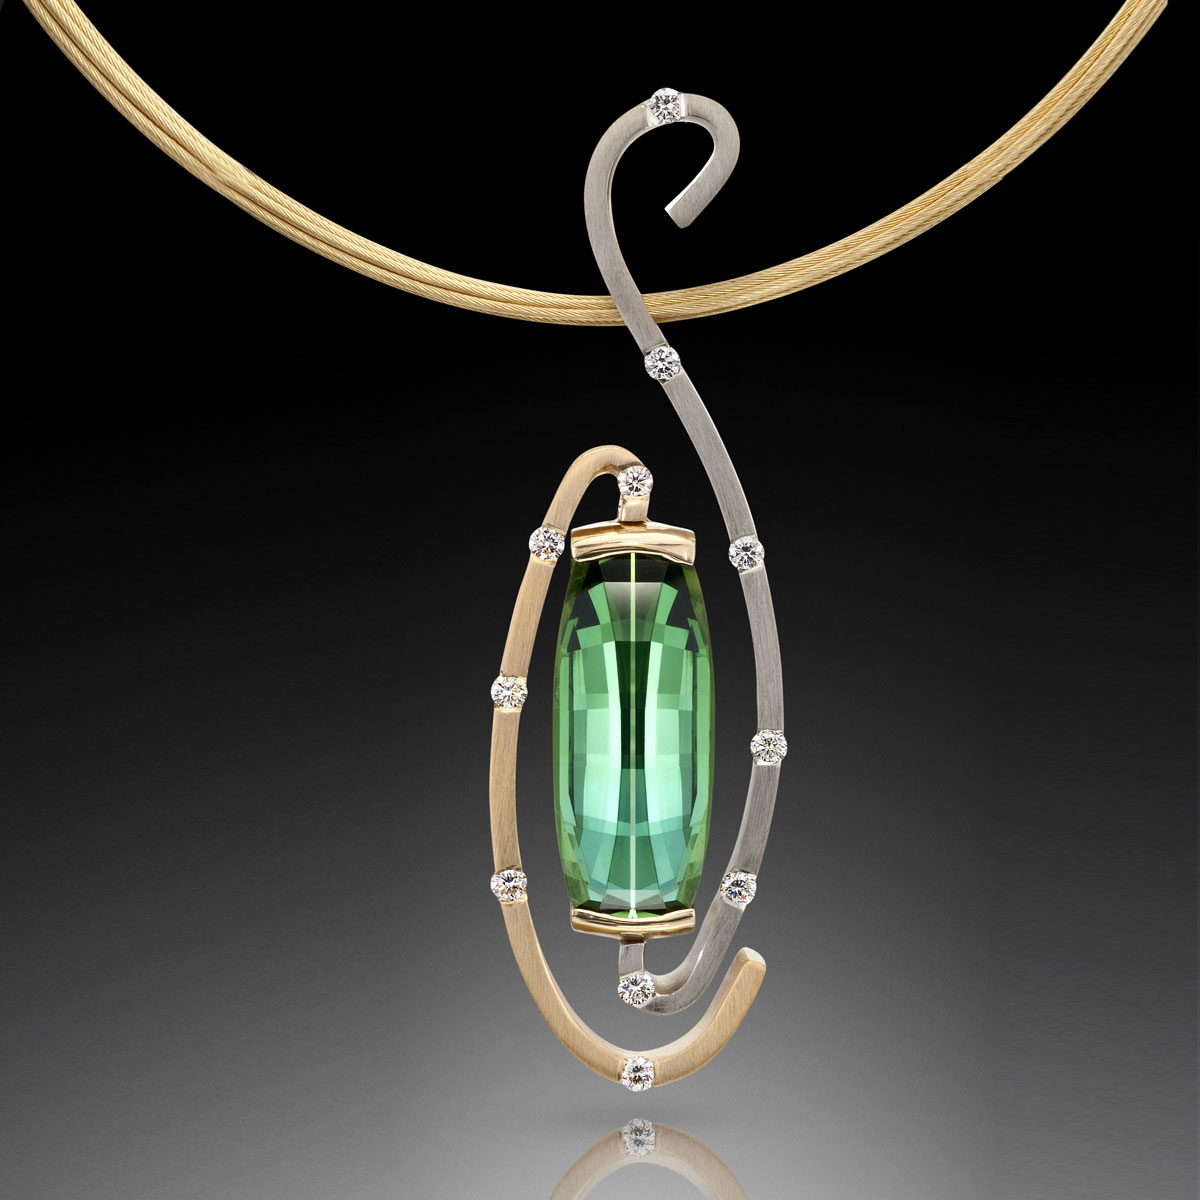 exquisite tourmaline pendant